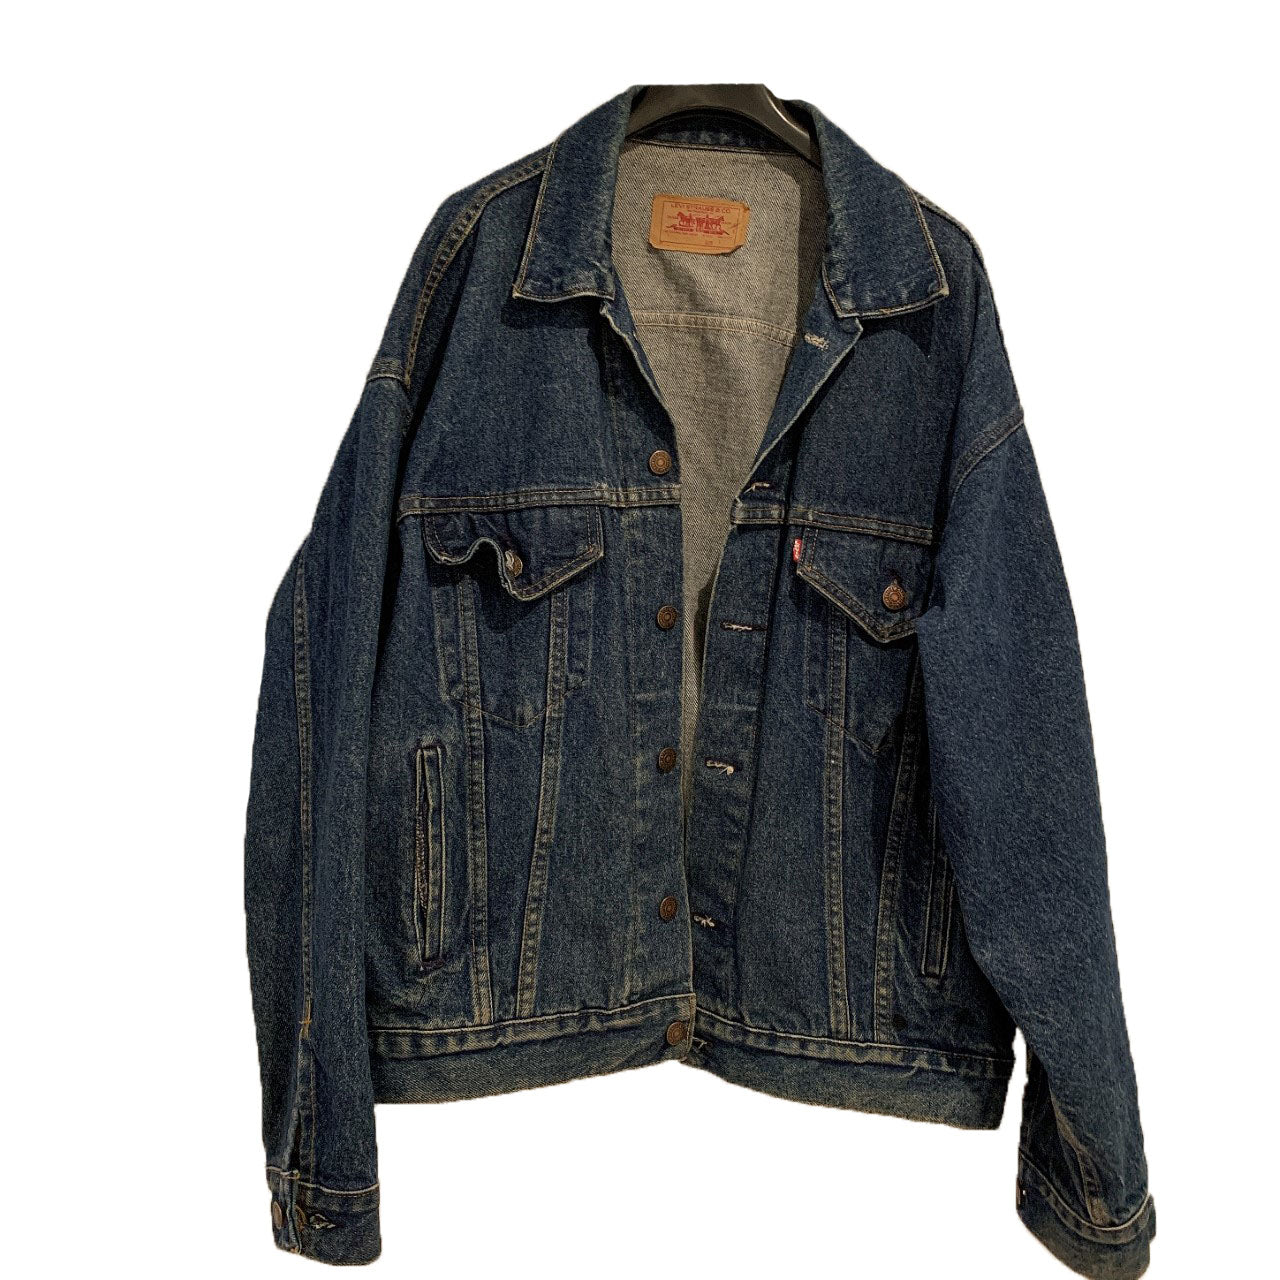 LEVIS DRK DENIM JACKET